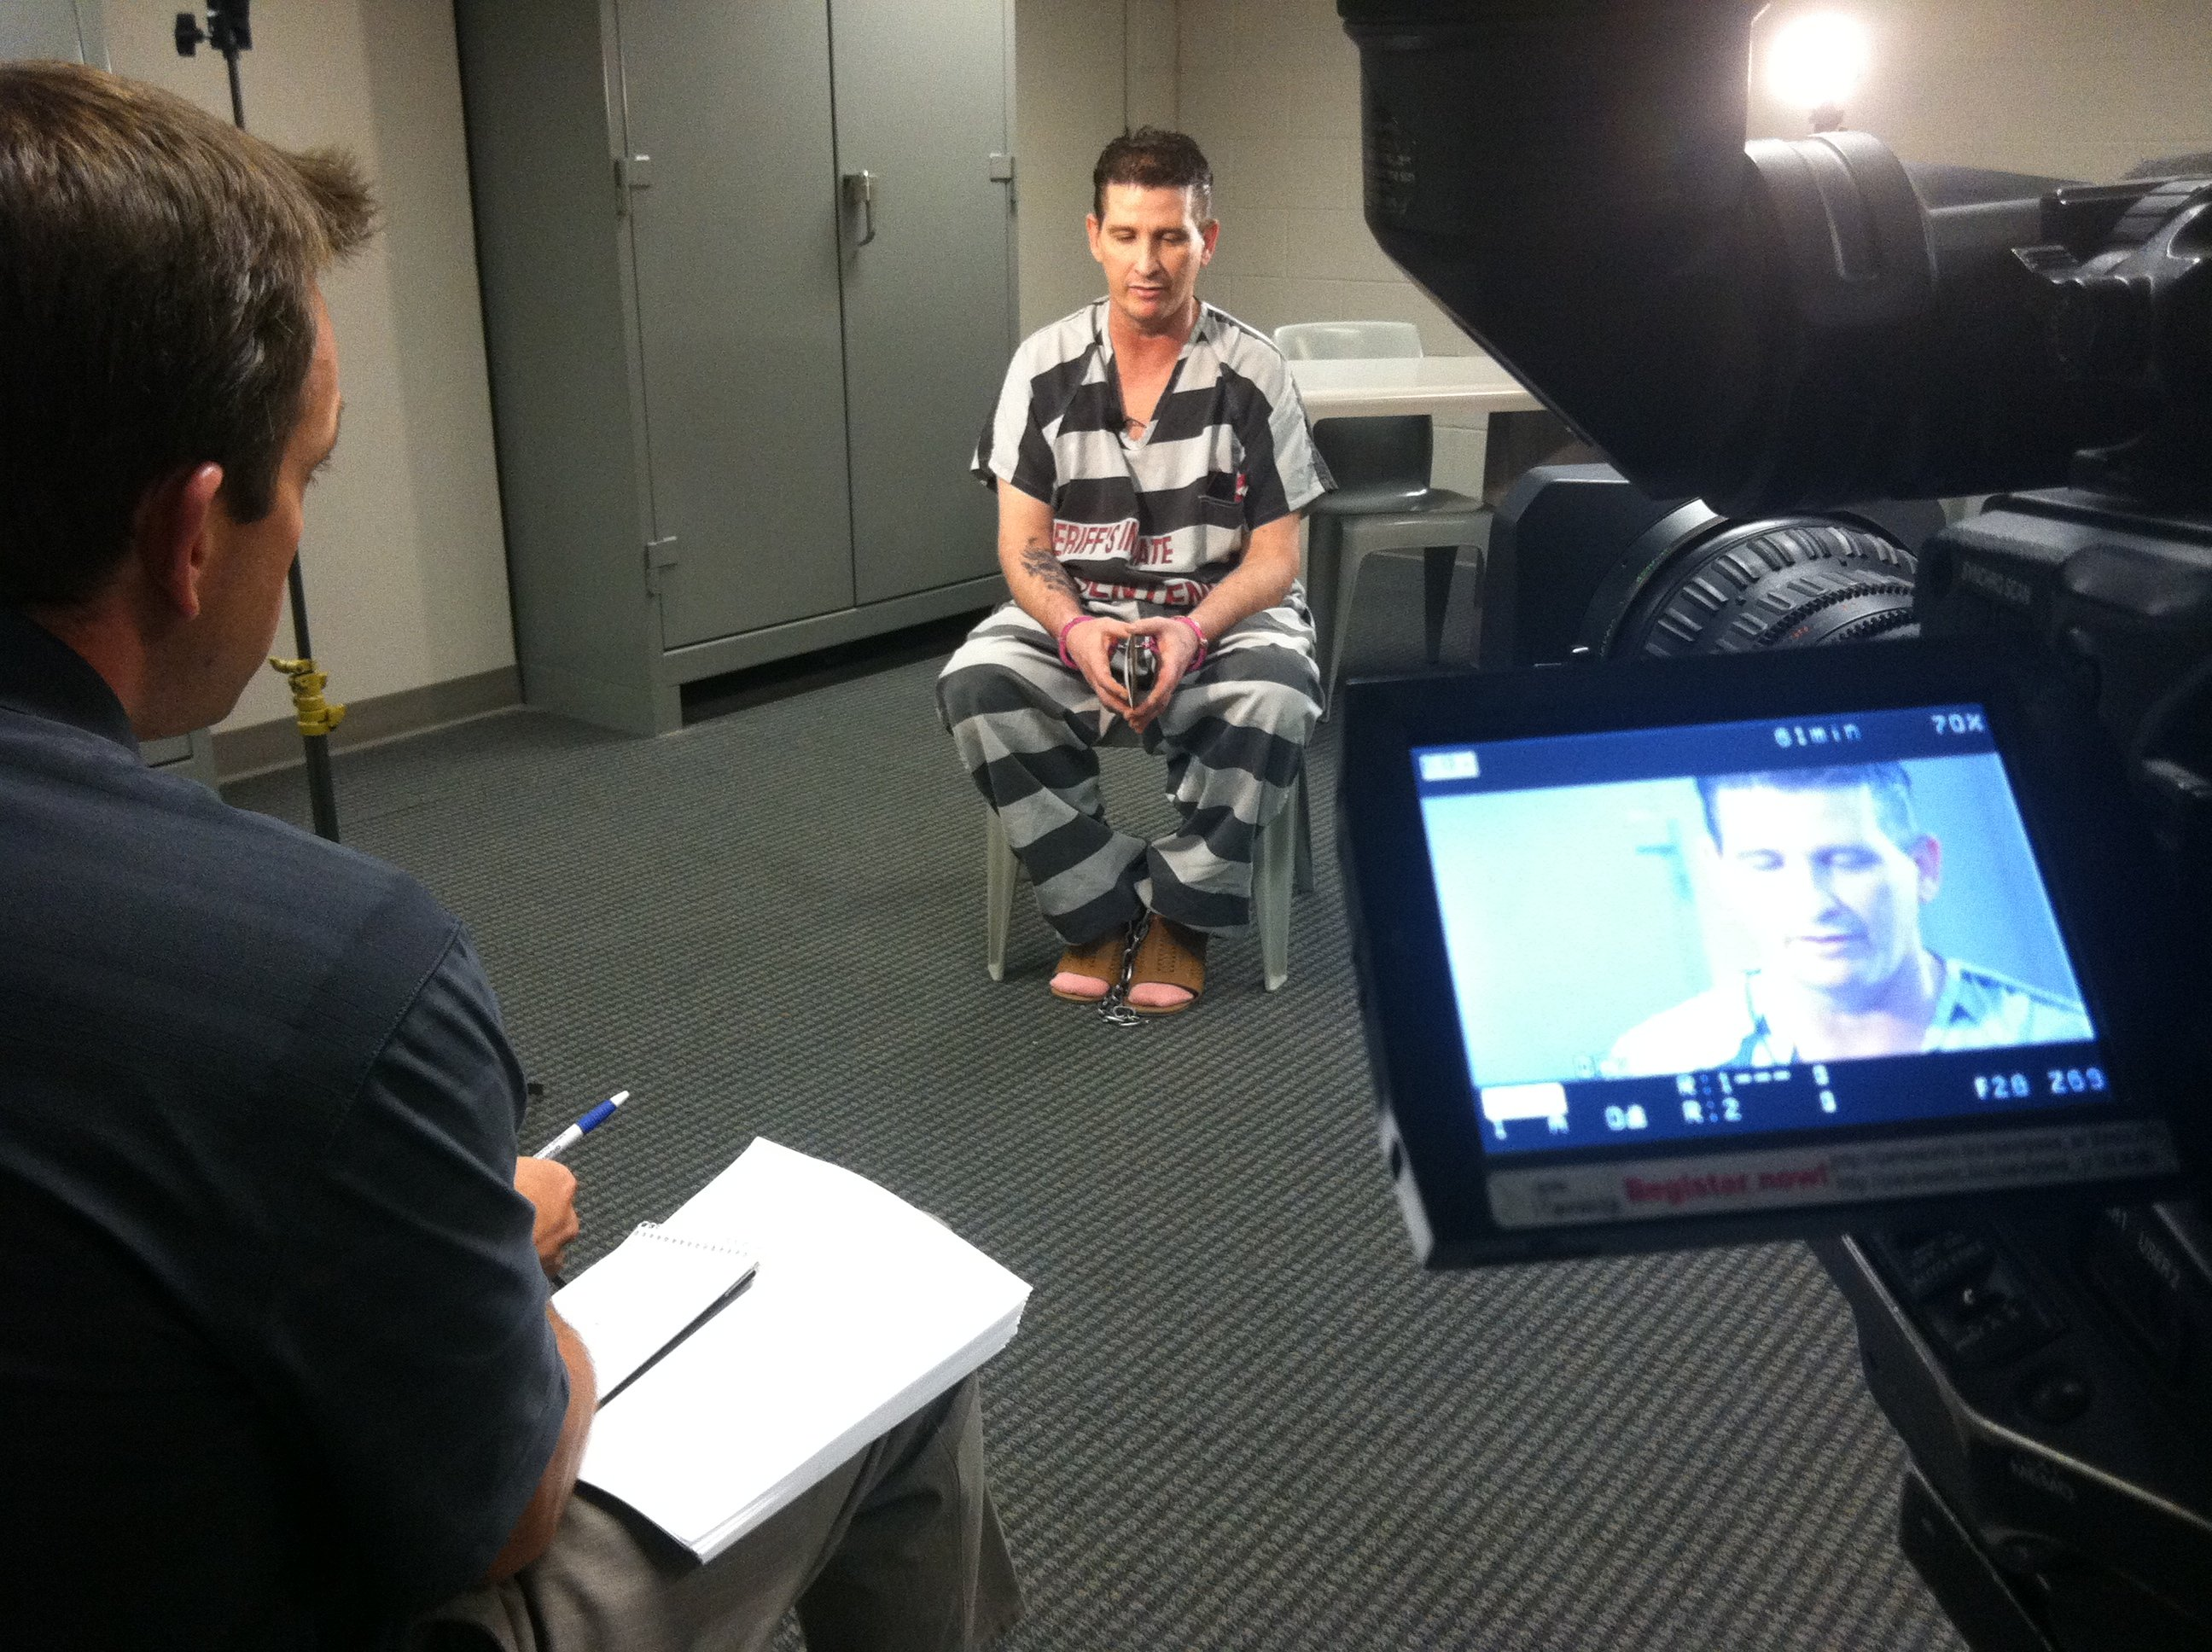 CBS 5 News' Adam Longo spoke exclusively with Steven Michael Humelhans after he was found guilty to a 1988 Phoenix murder.